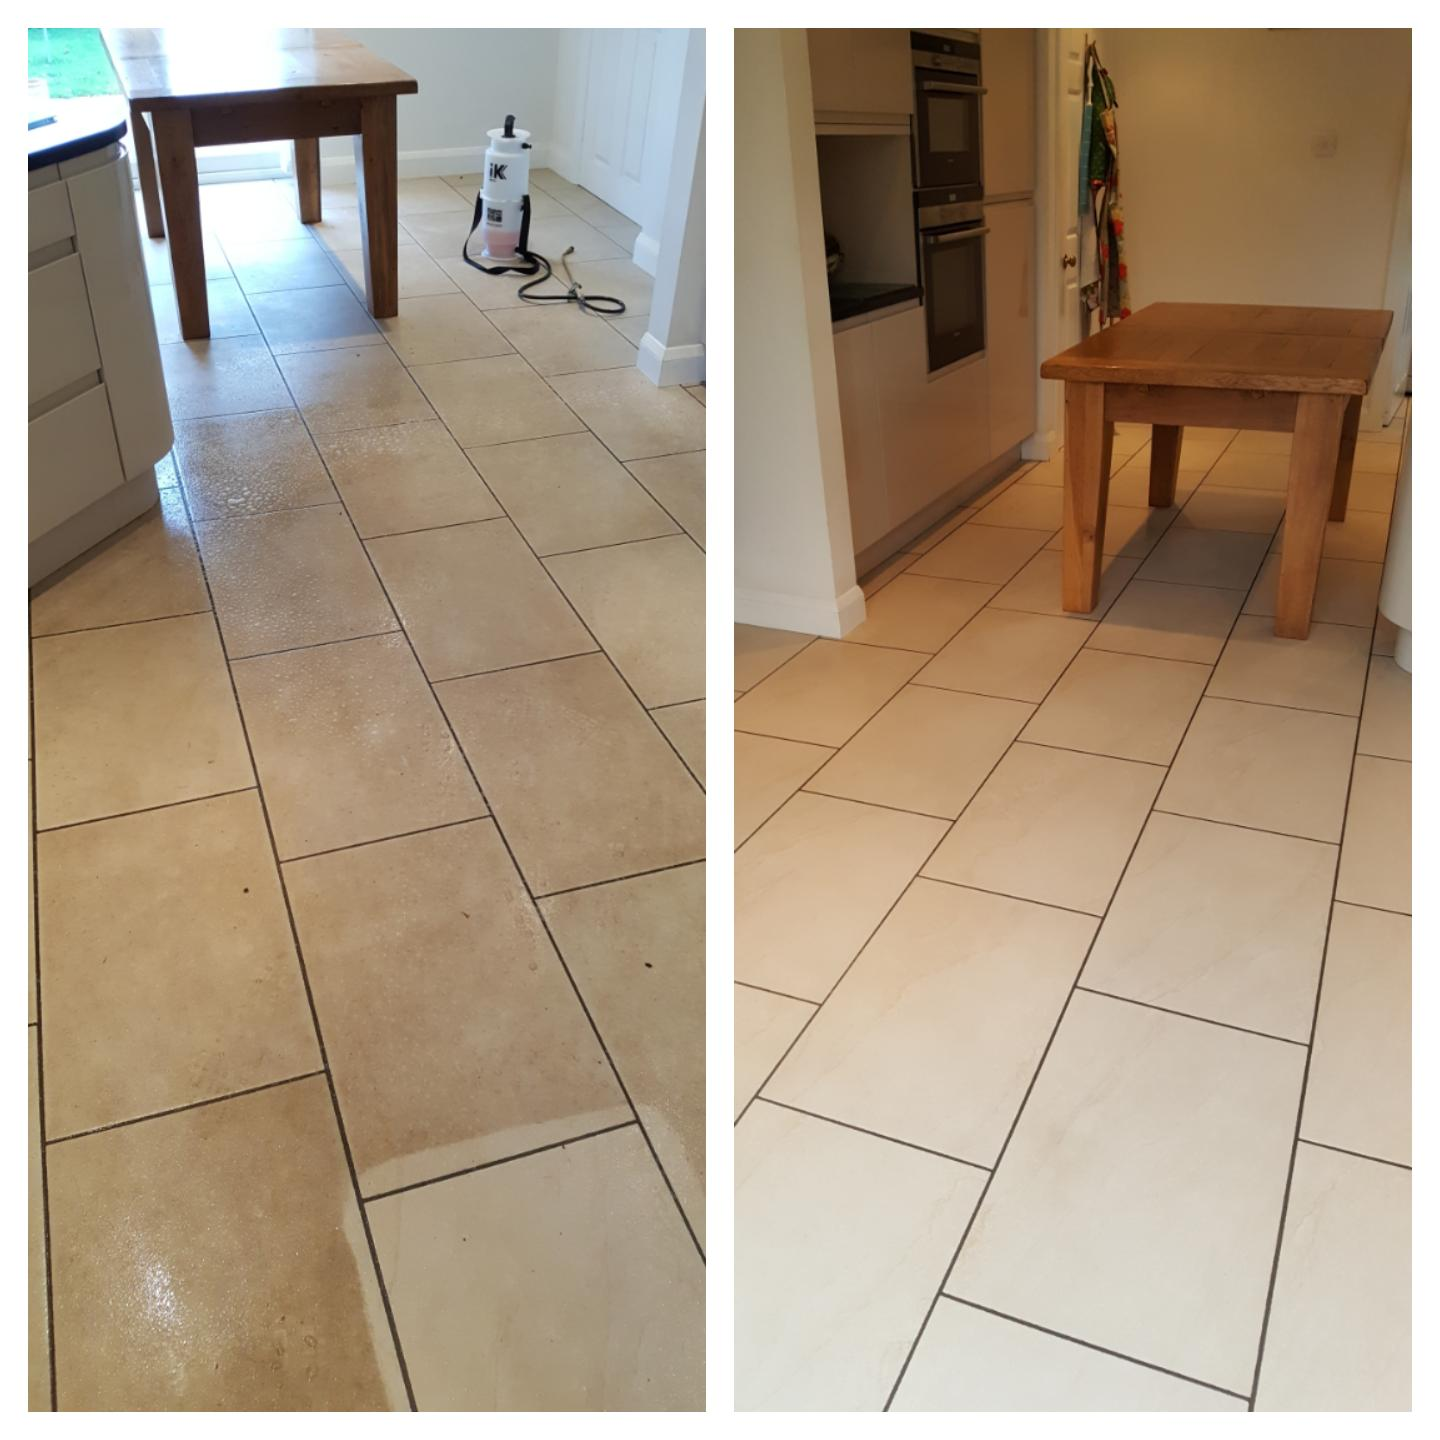 Tile cleaning york patio stone floor cleaning york marble tile cleaning york dailygadgetfo Gallery